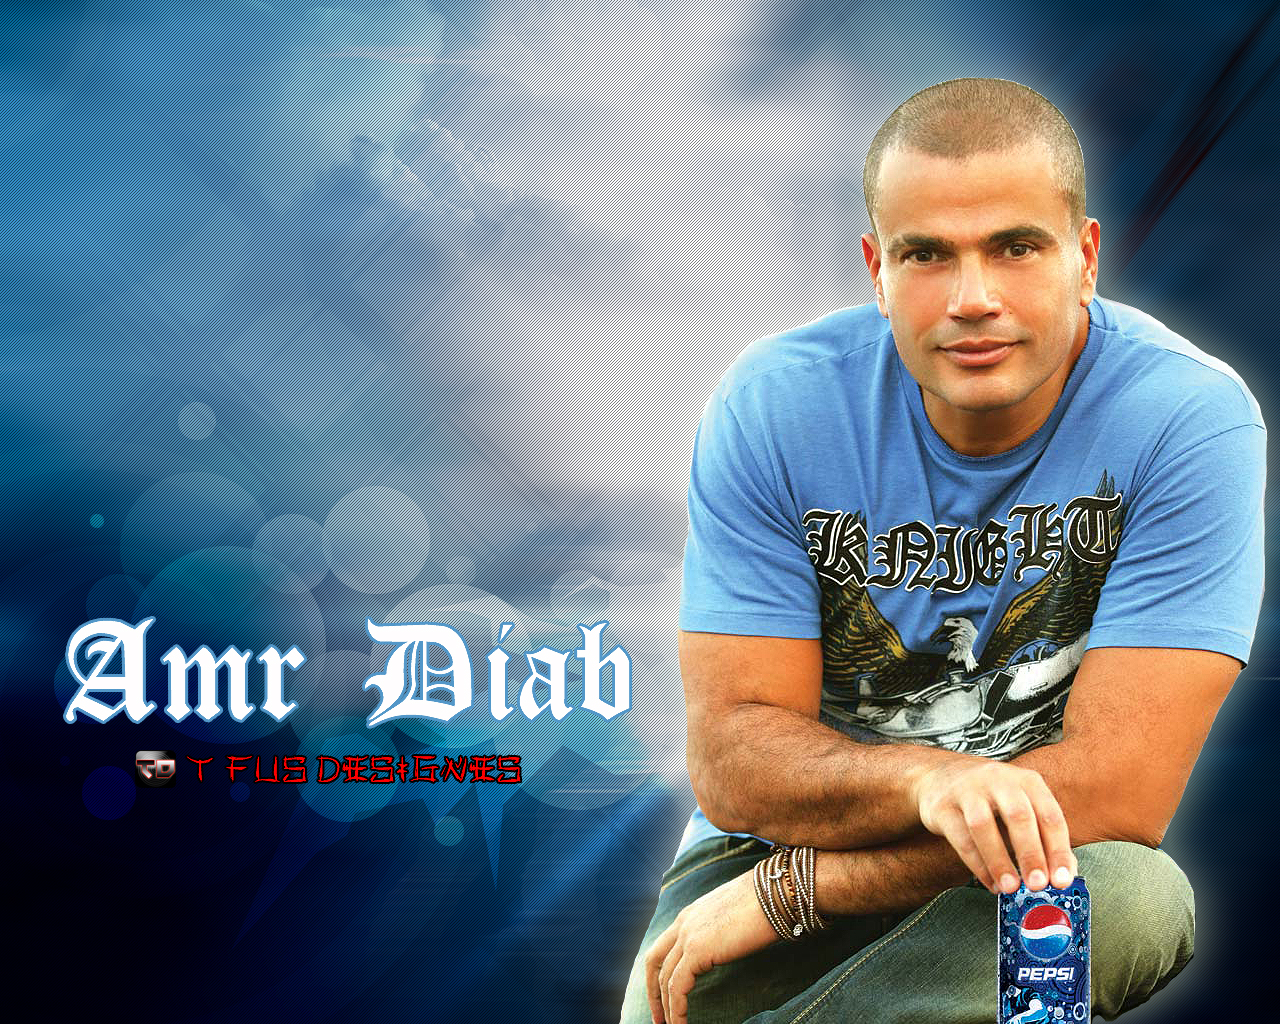 Amr Diab to perform at Misr University on Feb. 22 ...